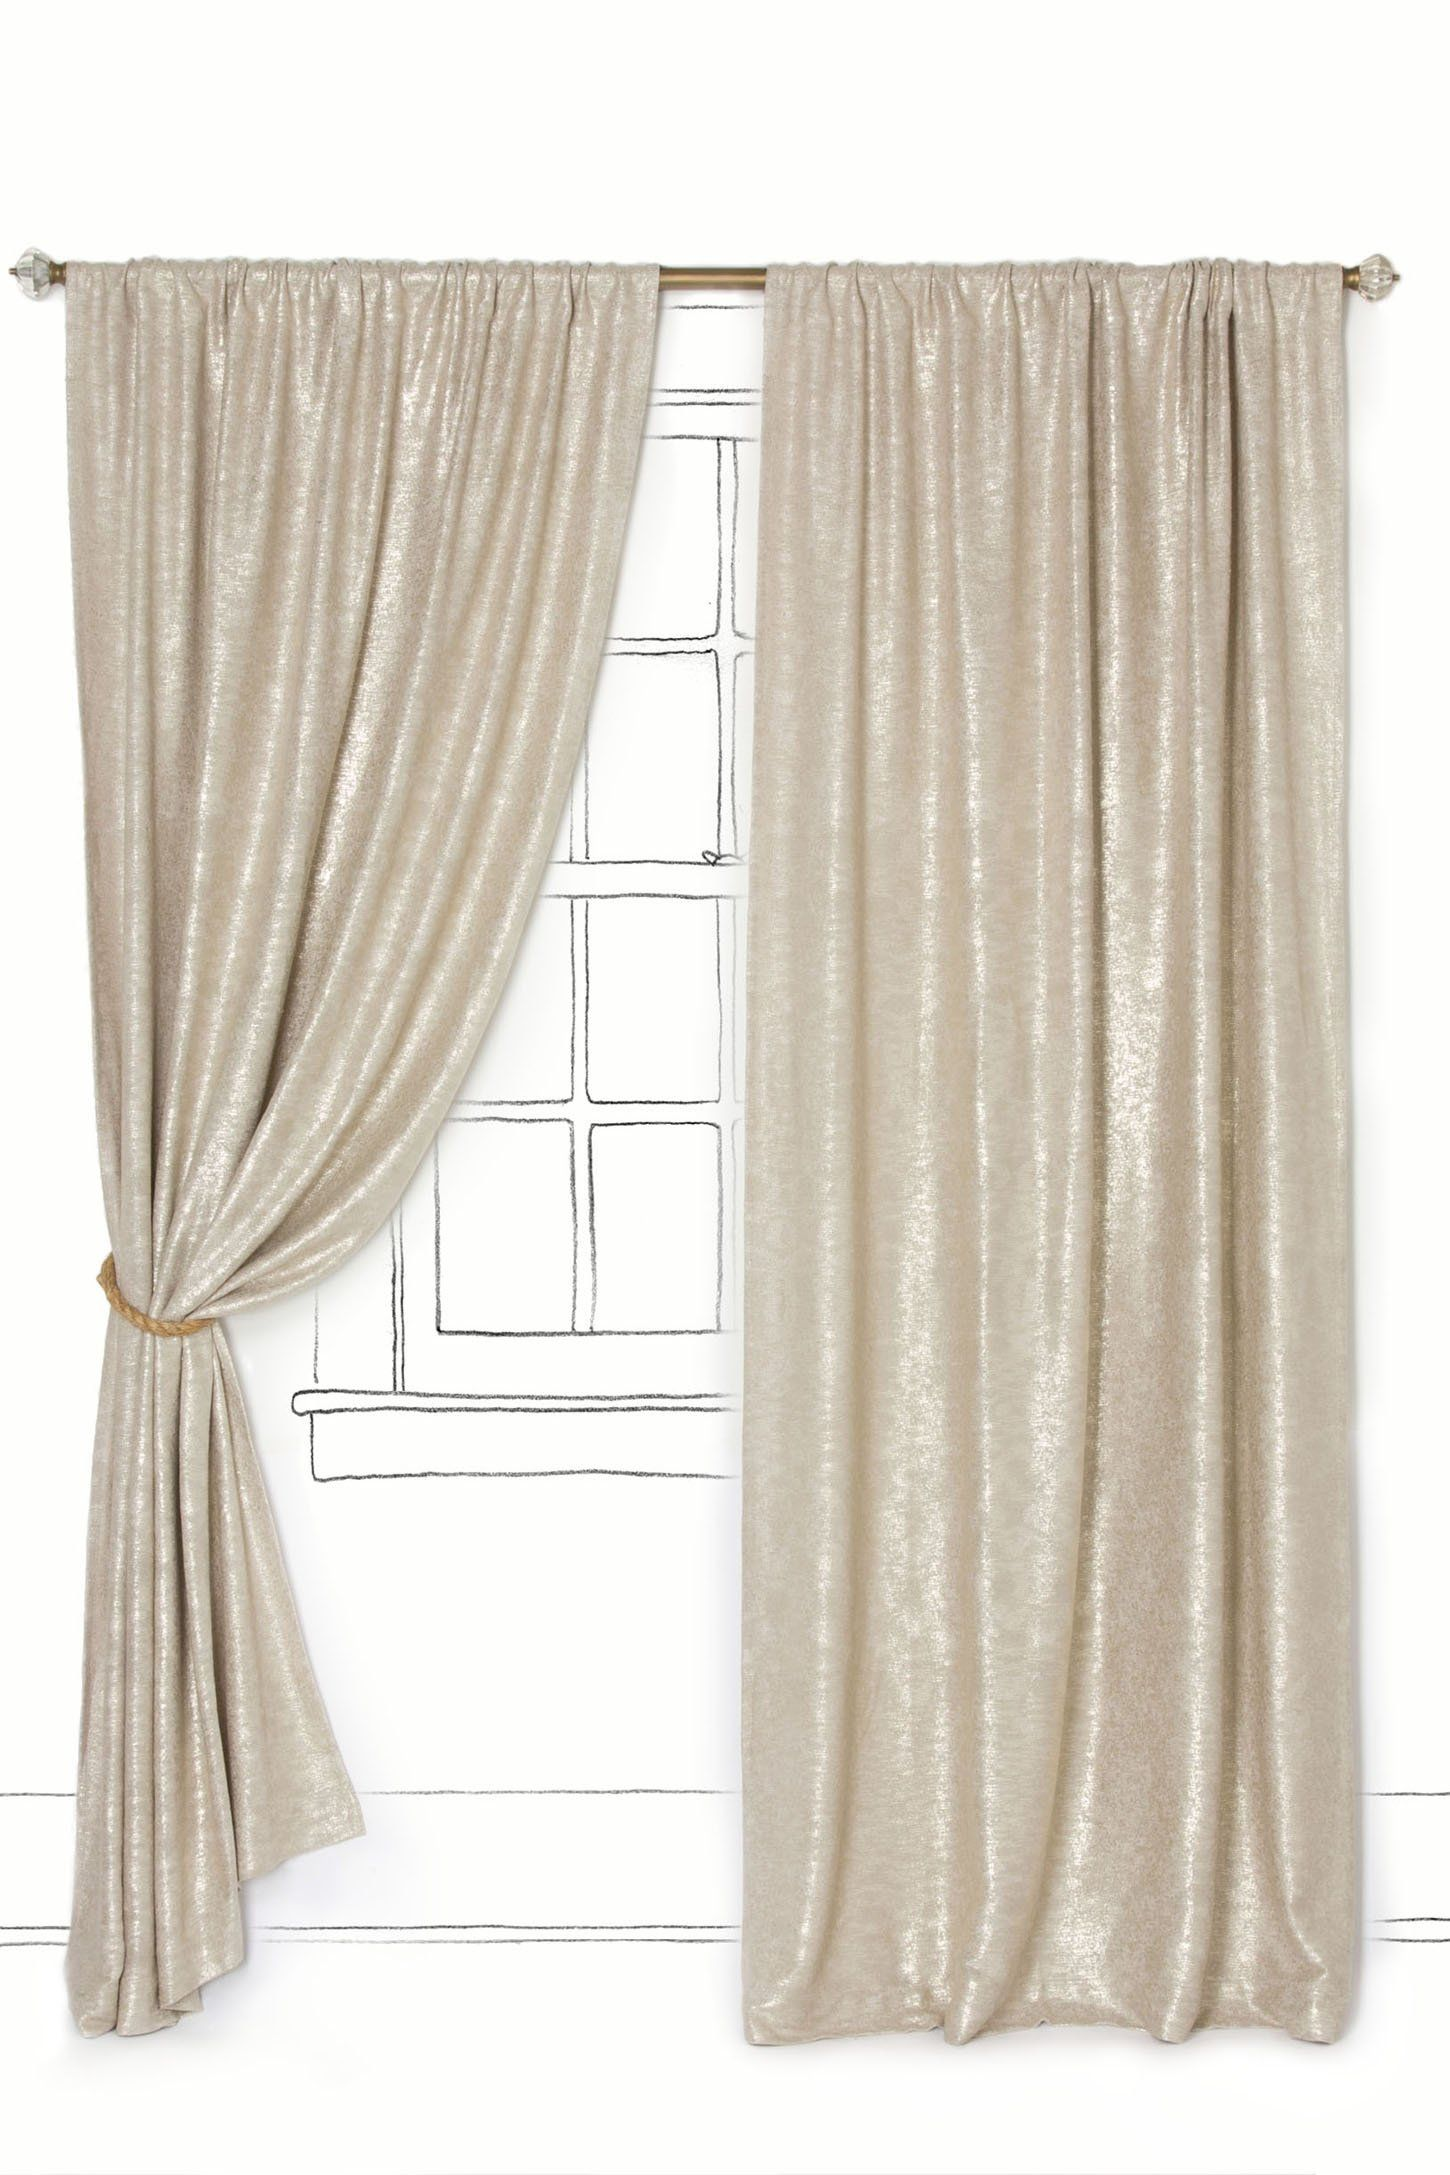 Smithery Curtain Rod Wave Curtains Curtains Home